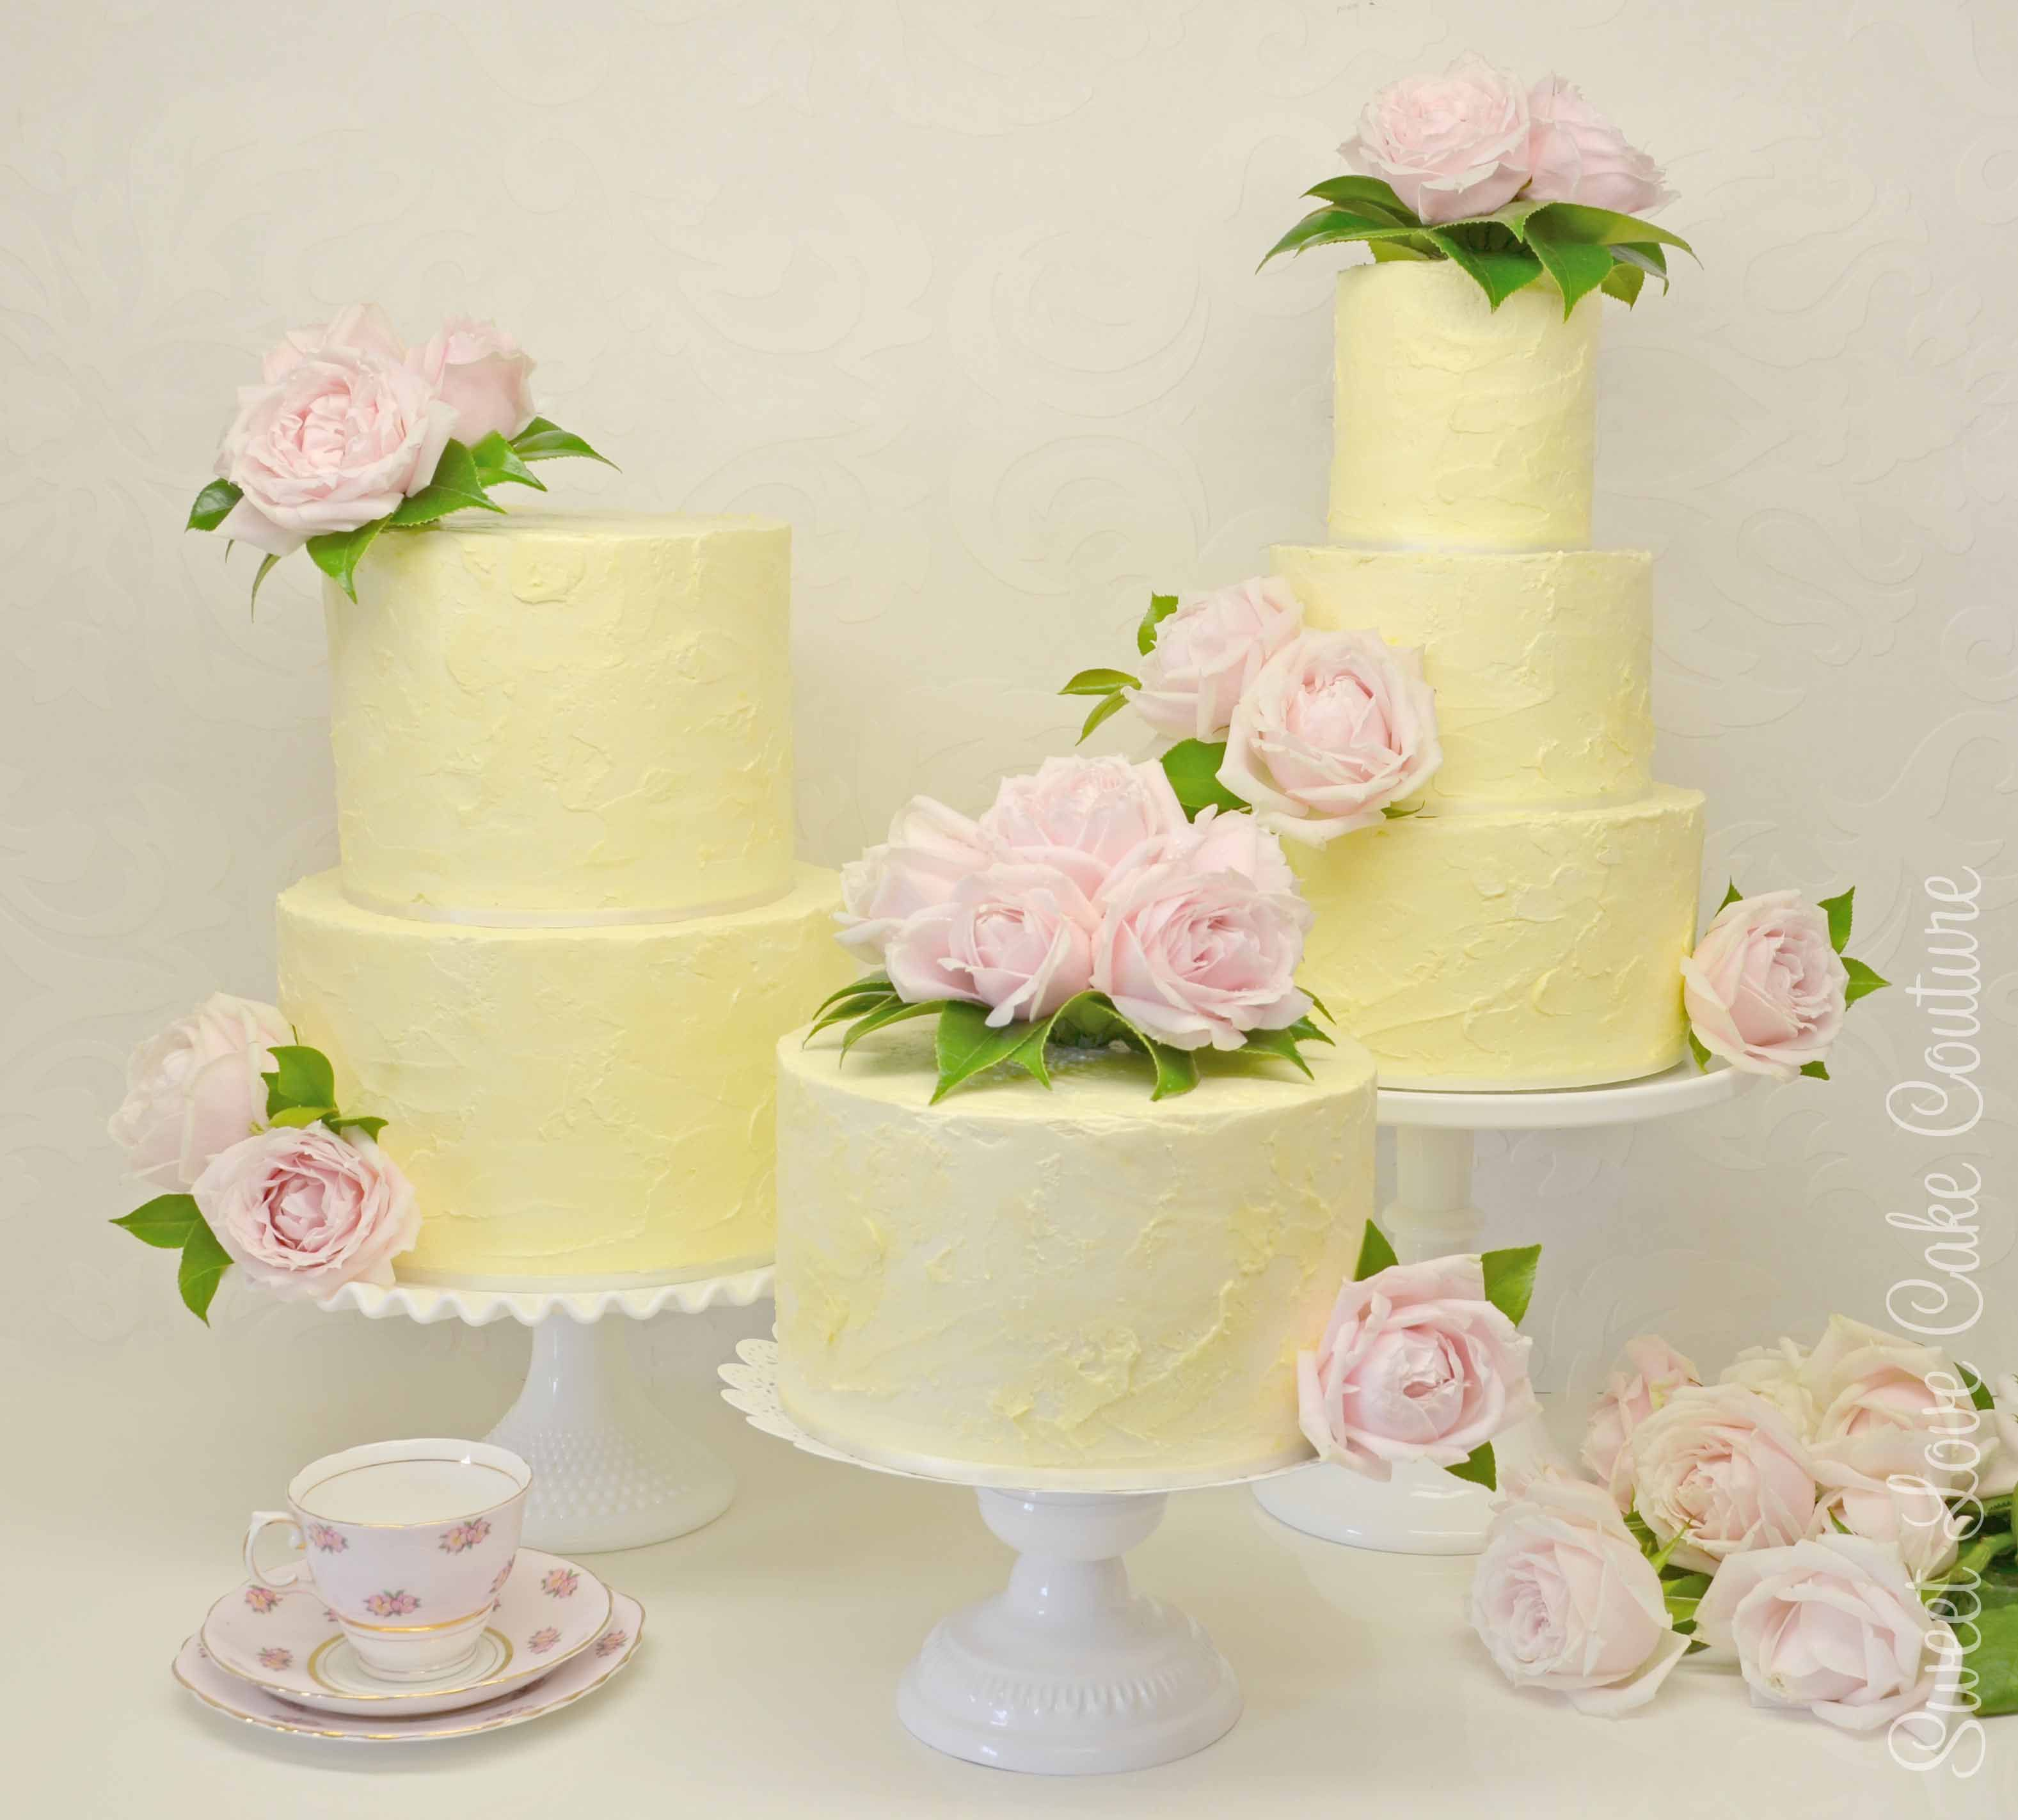 Sweet Love Cake Couture - Wedding Cakes - My Wedding Concierge. http ...